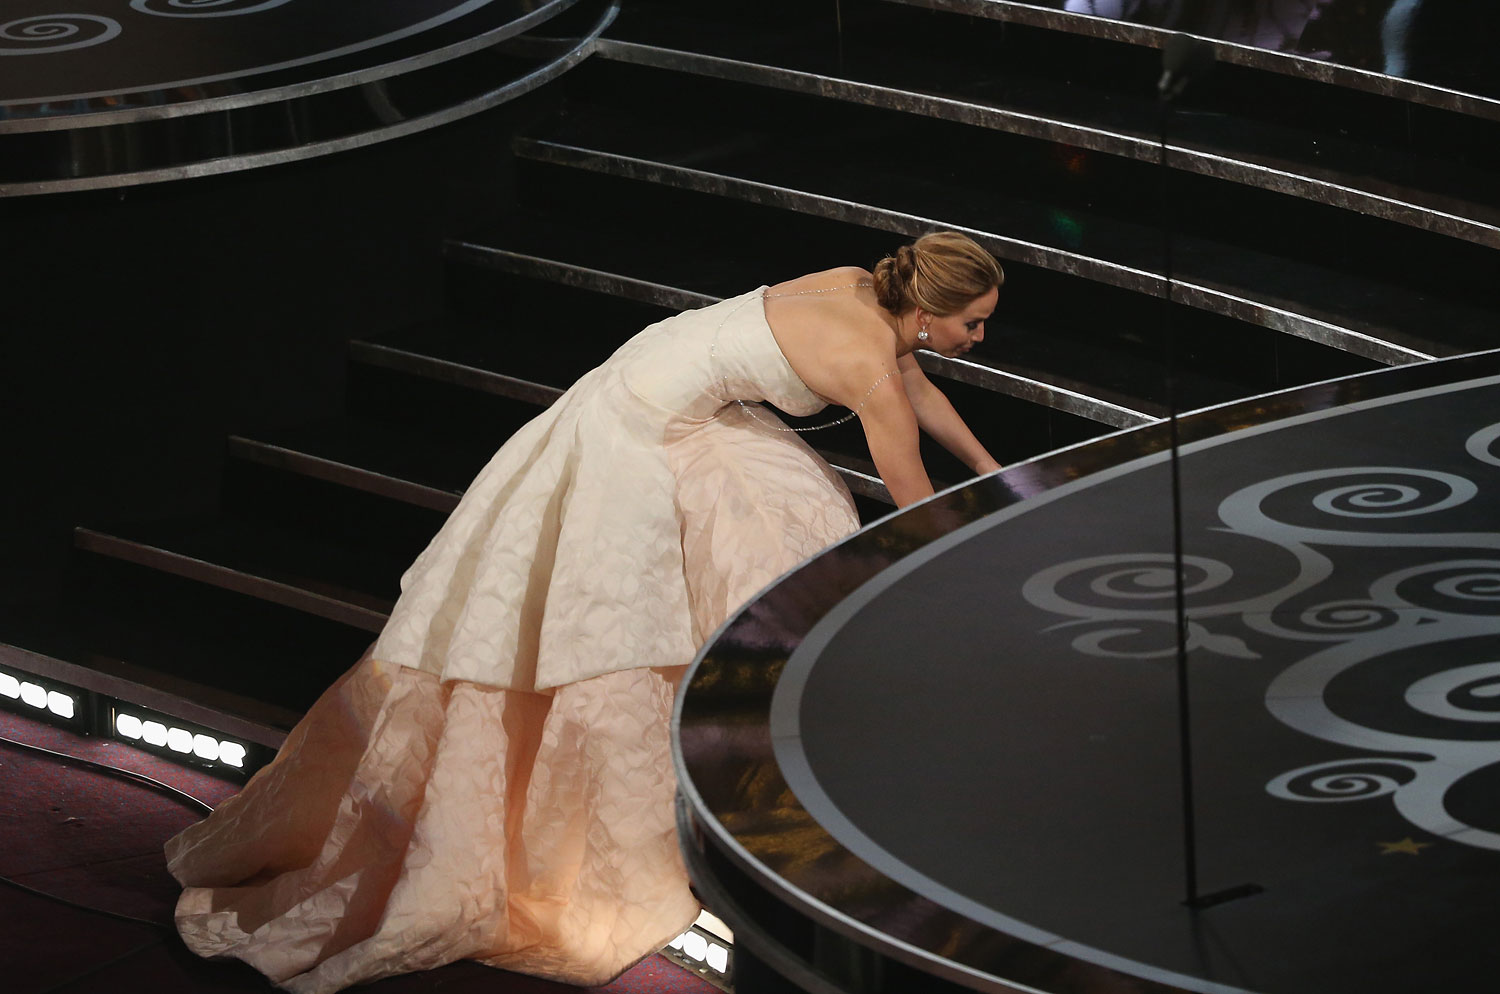 Of course, in true Jennifer Lawrence fashion, her greatest achievement was not without a hiccup as she tripped on her way to accept her Oscar.